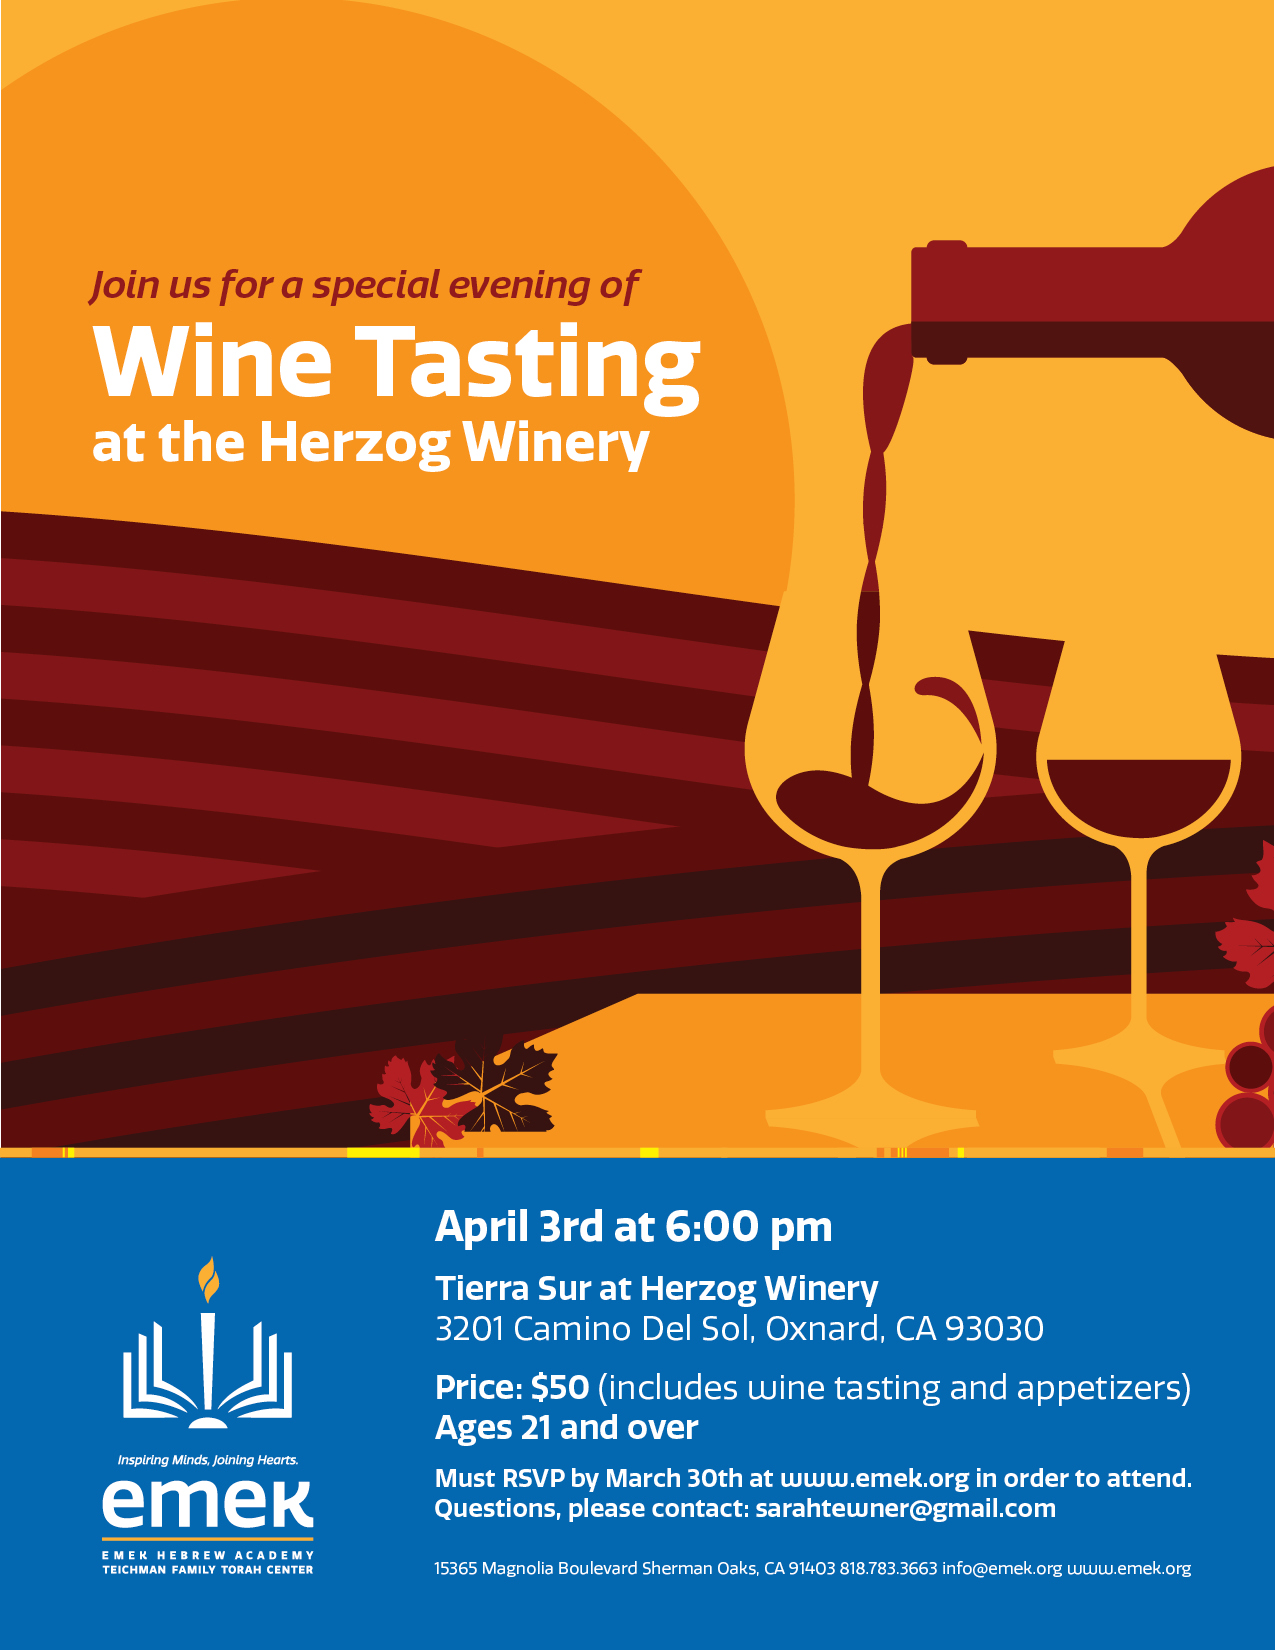 WineTasting2016_Flyer_FNL_Rev.jpg